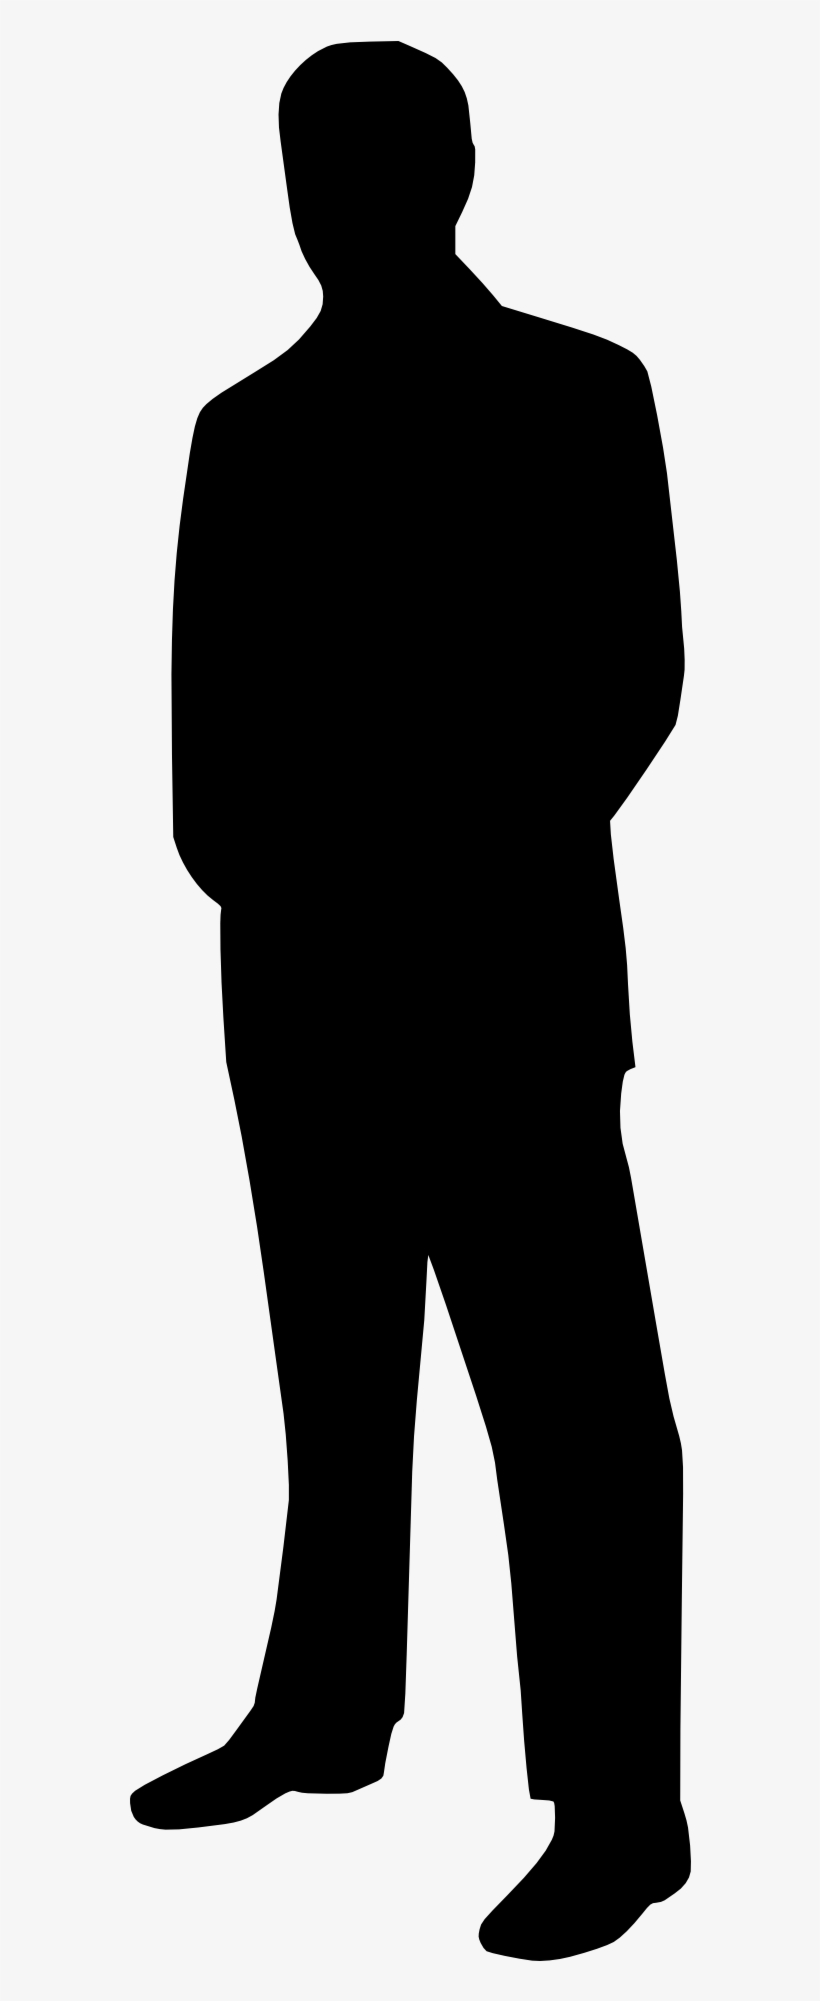 Free Png Shadow Man & Free Shadow Man.png Transparent Images.